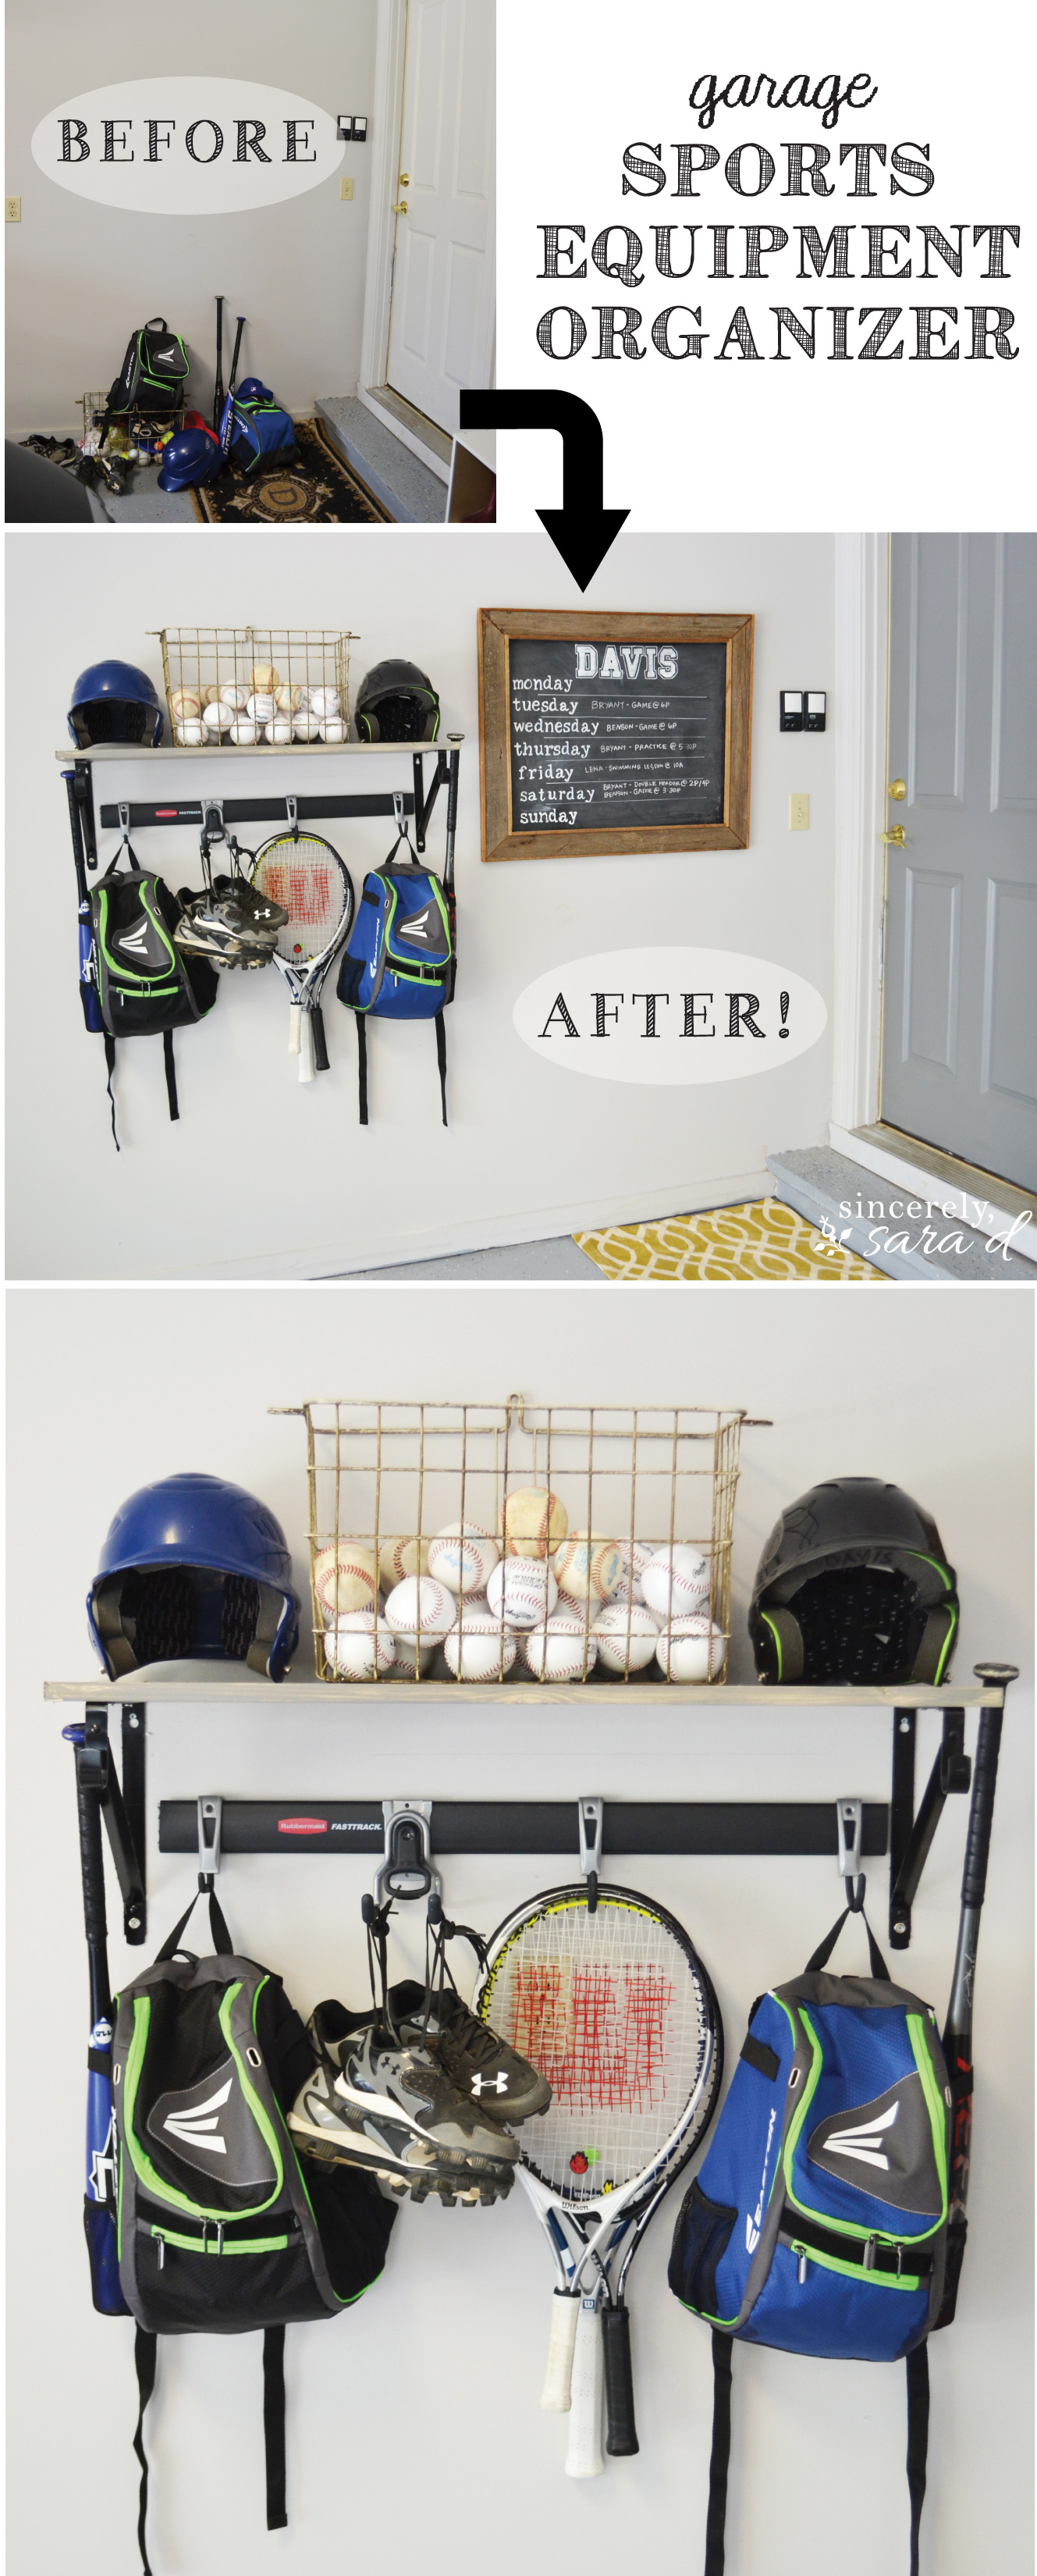 See How We Organized Our Sports Equipment In Our Garage!